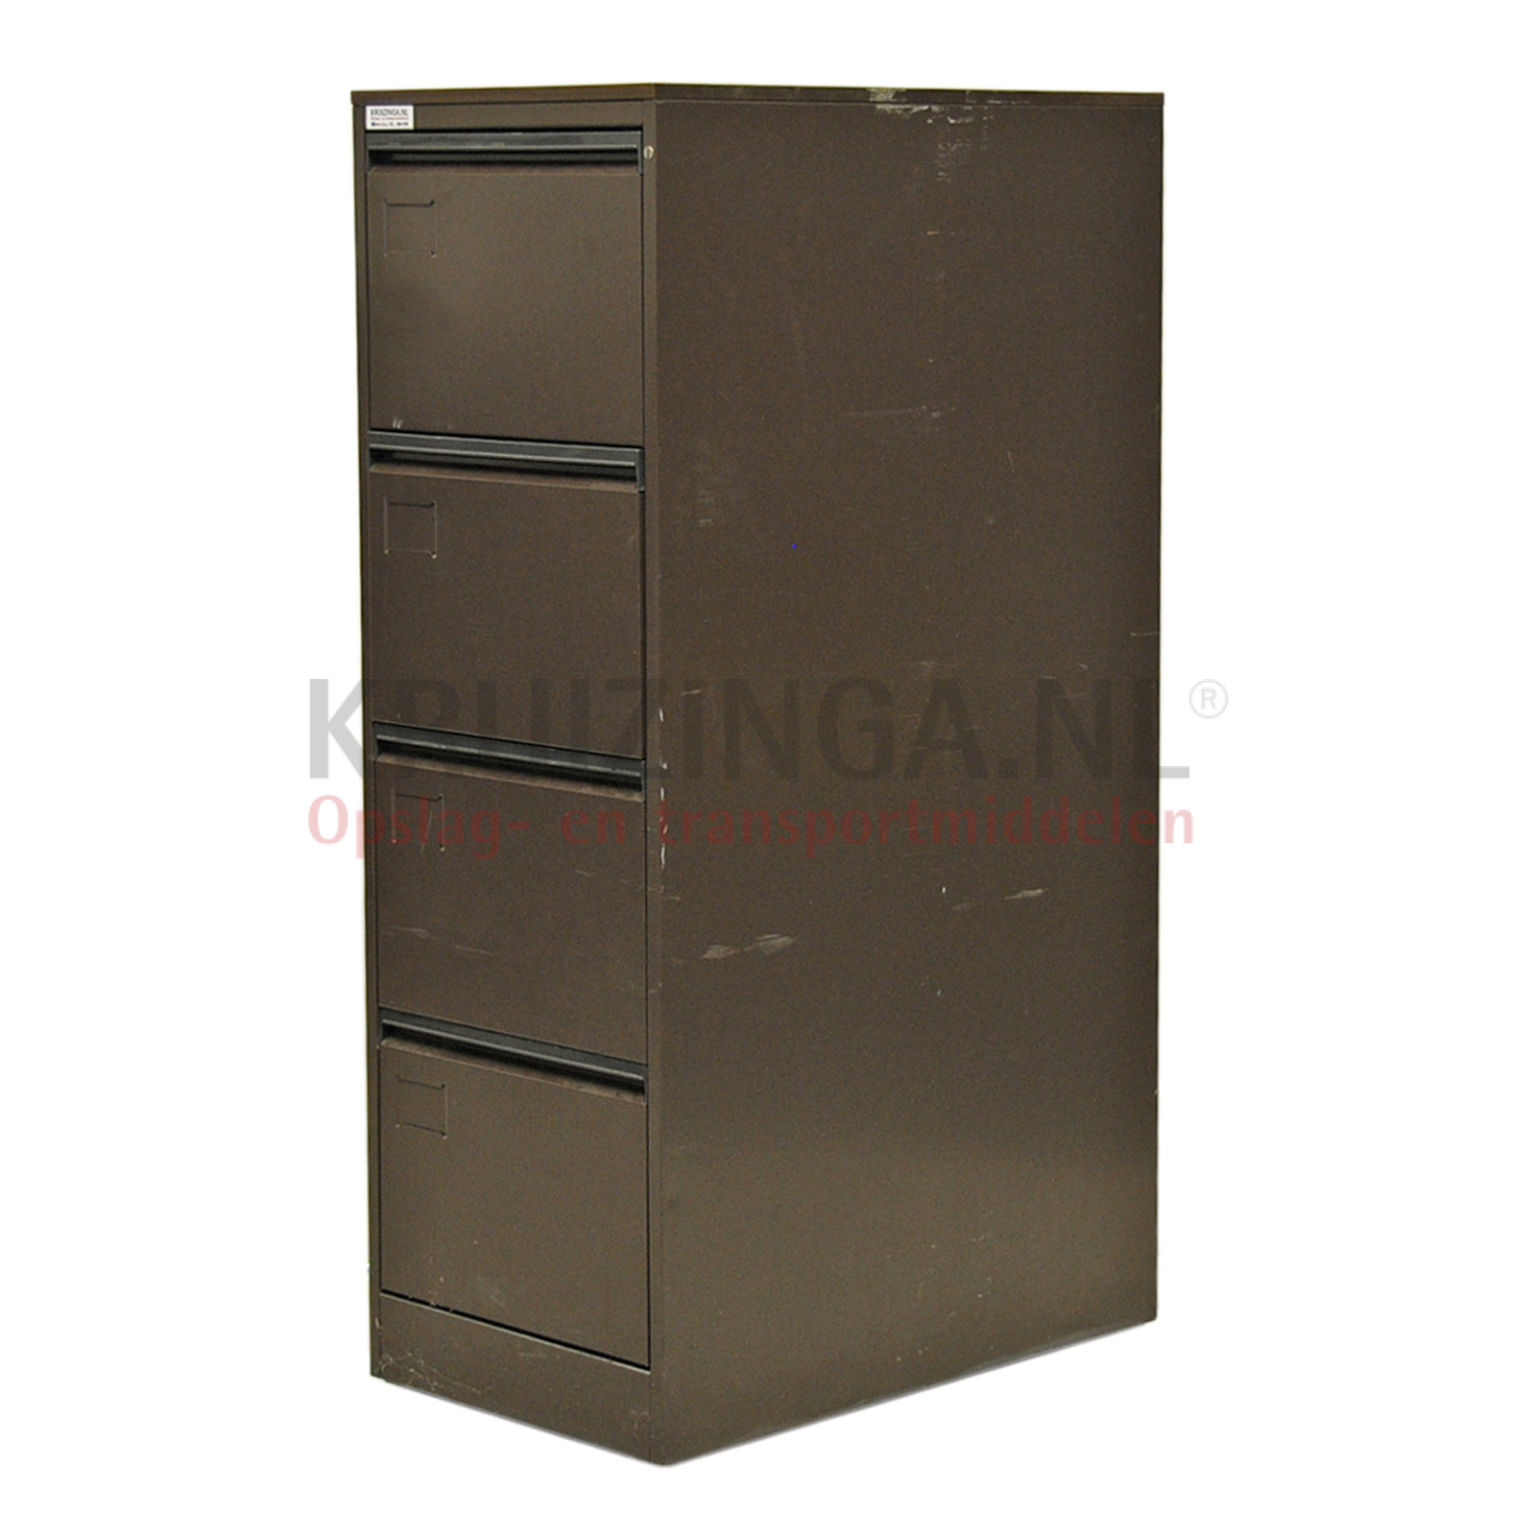 armoire armoire avec tiroirs 4 tiroirs occasion. Black Bedroom Furniture Sets. Home Design Ideas